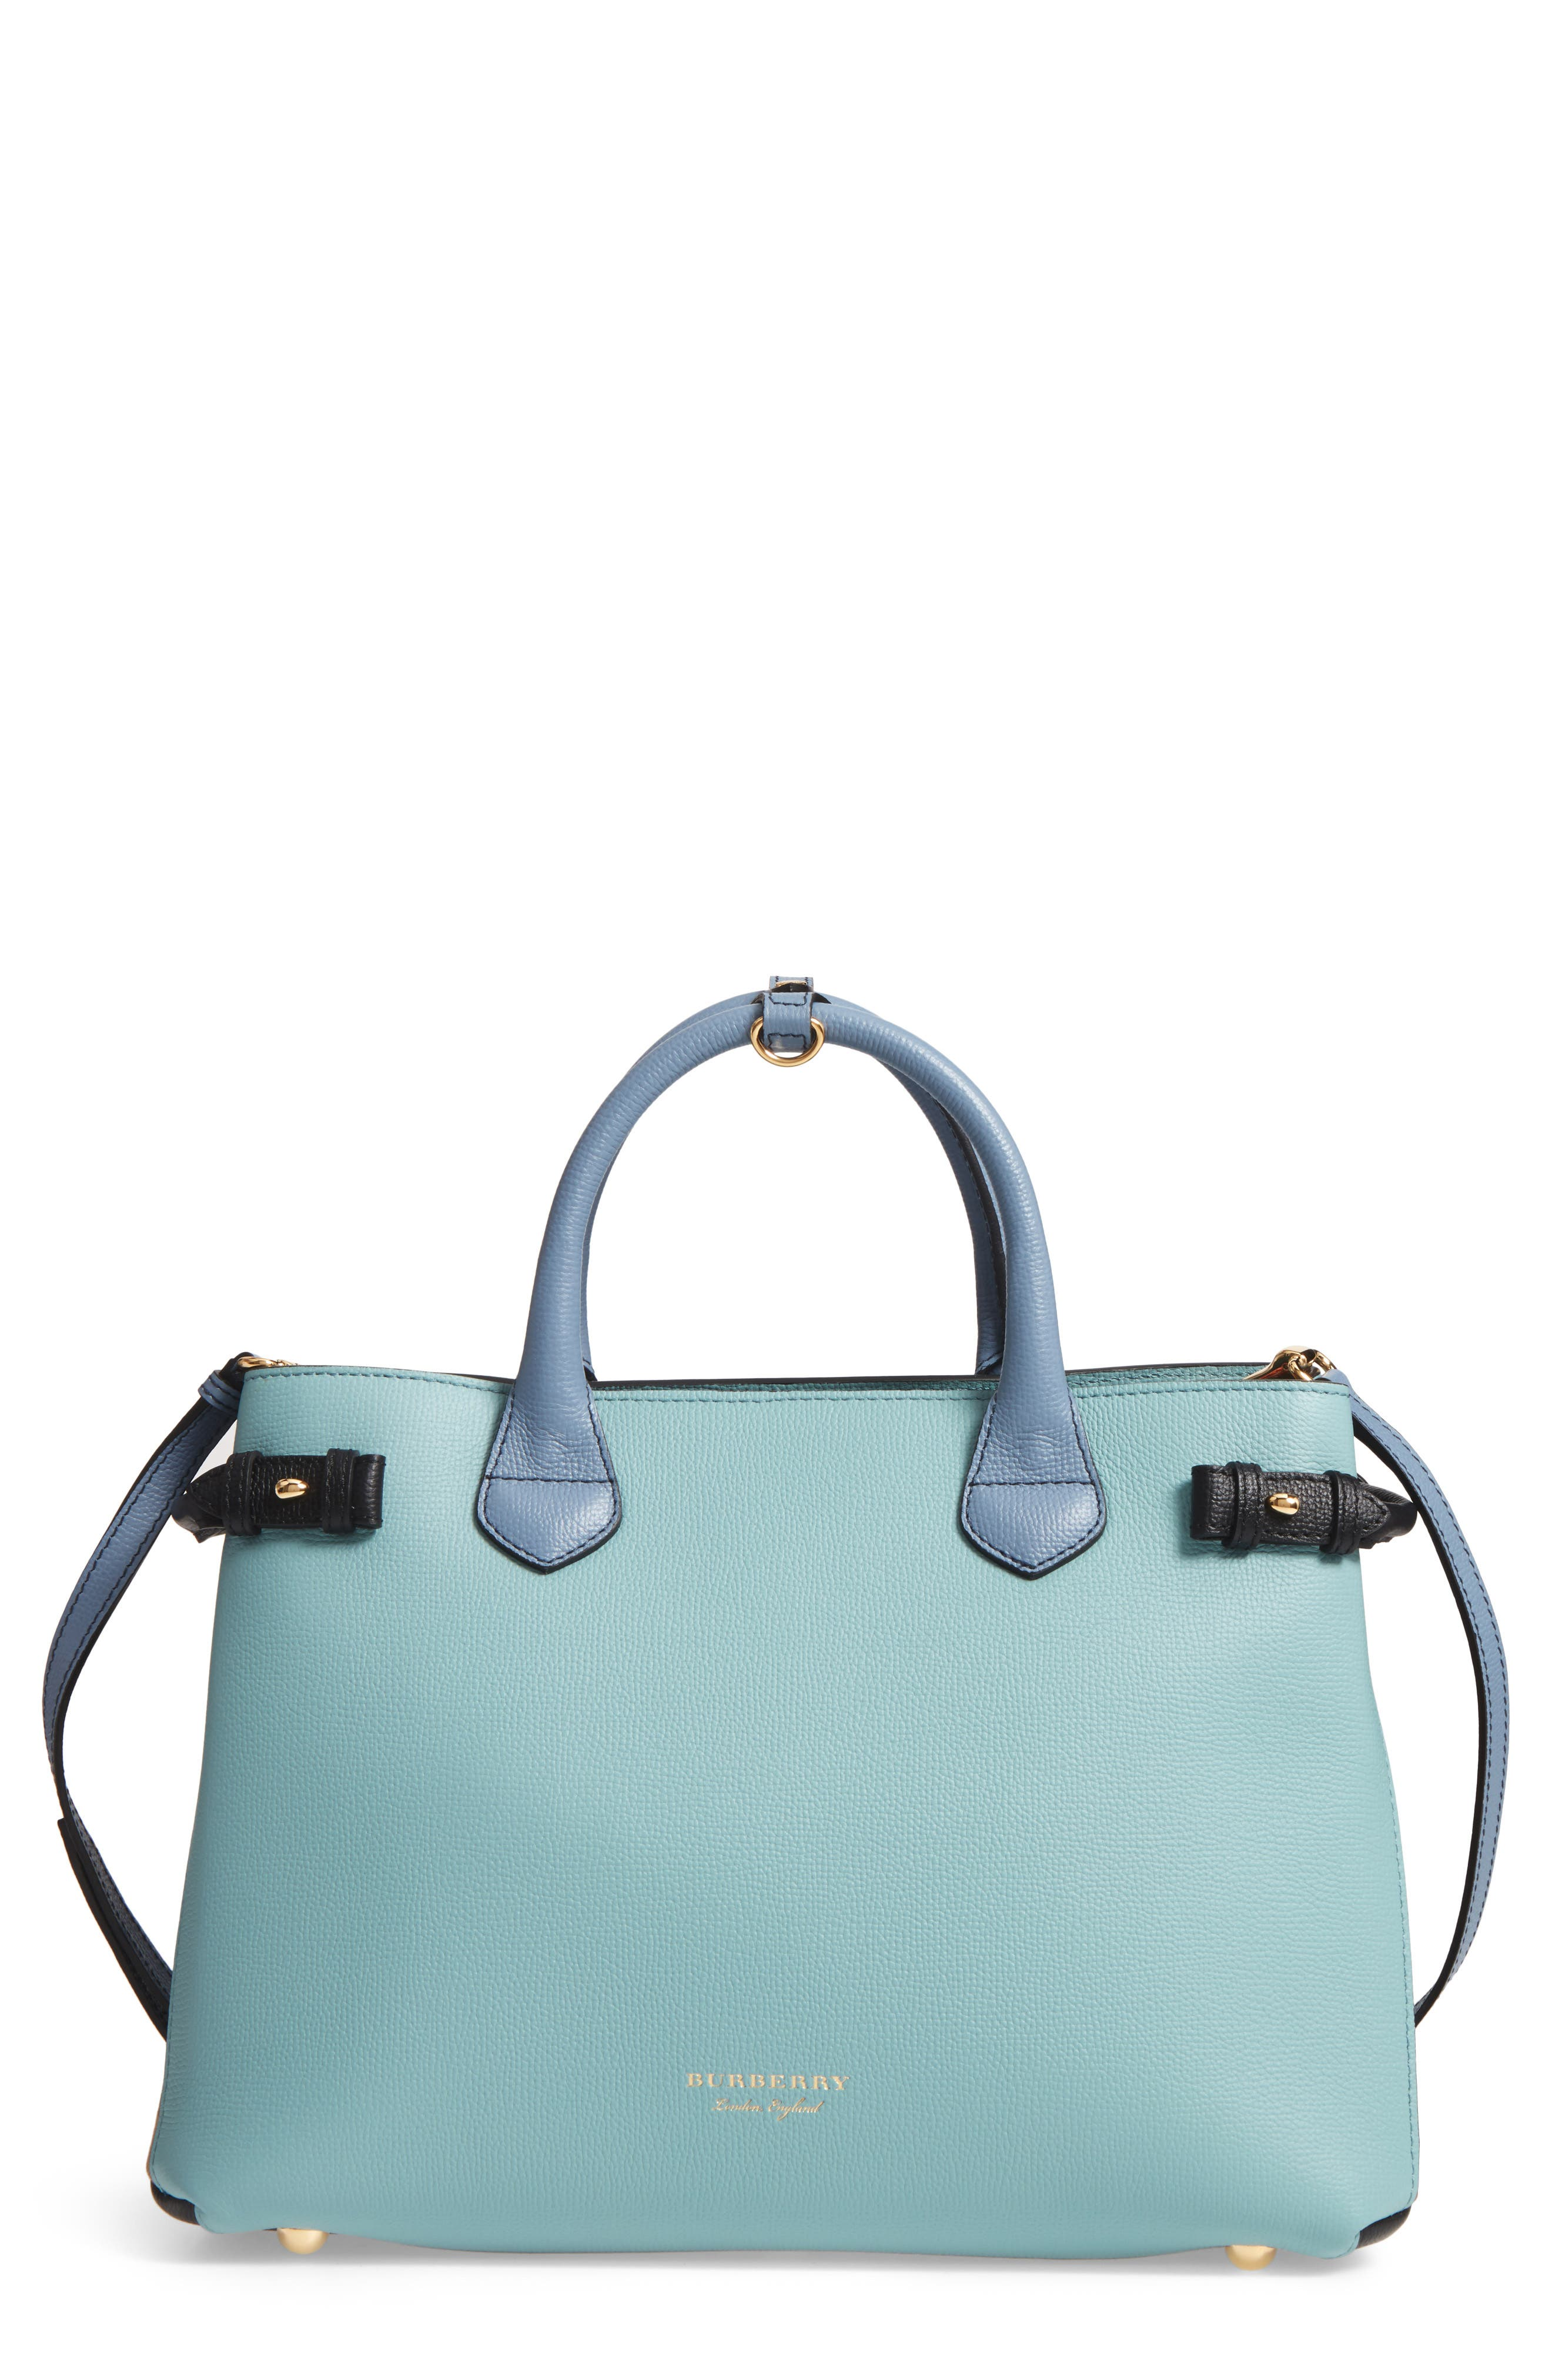 Medium Banner House Check & Leather Tote,                             Main thumbnail 1, color,                             Pale Opal/Slate Blue